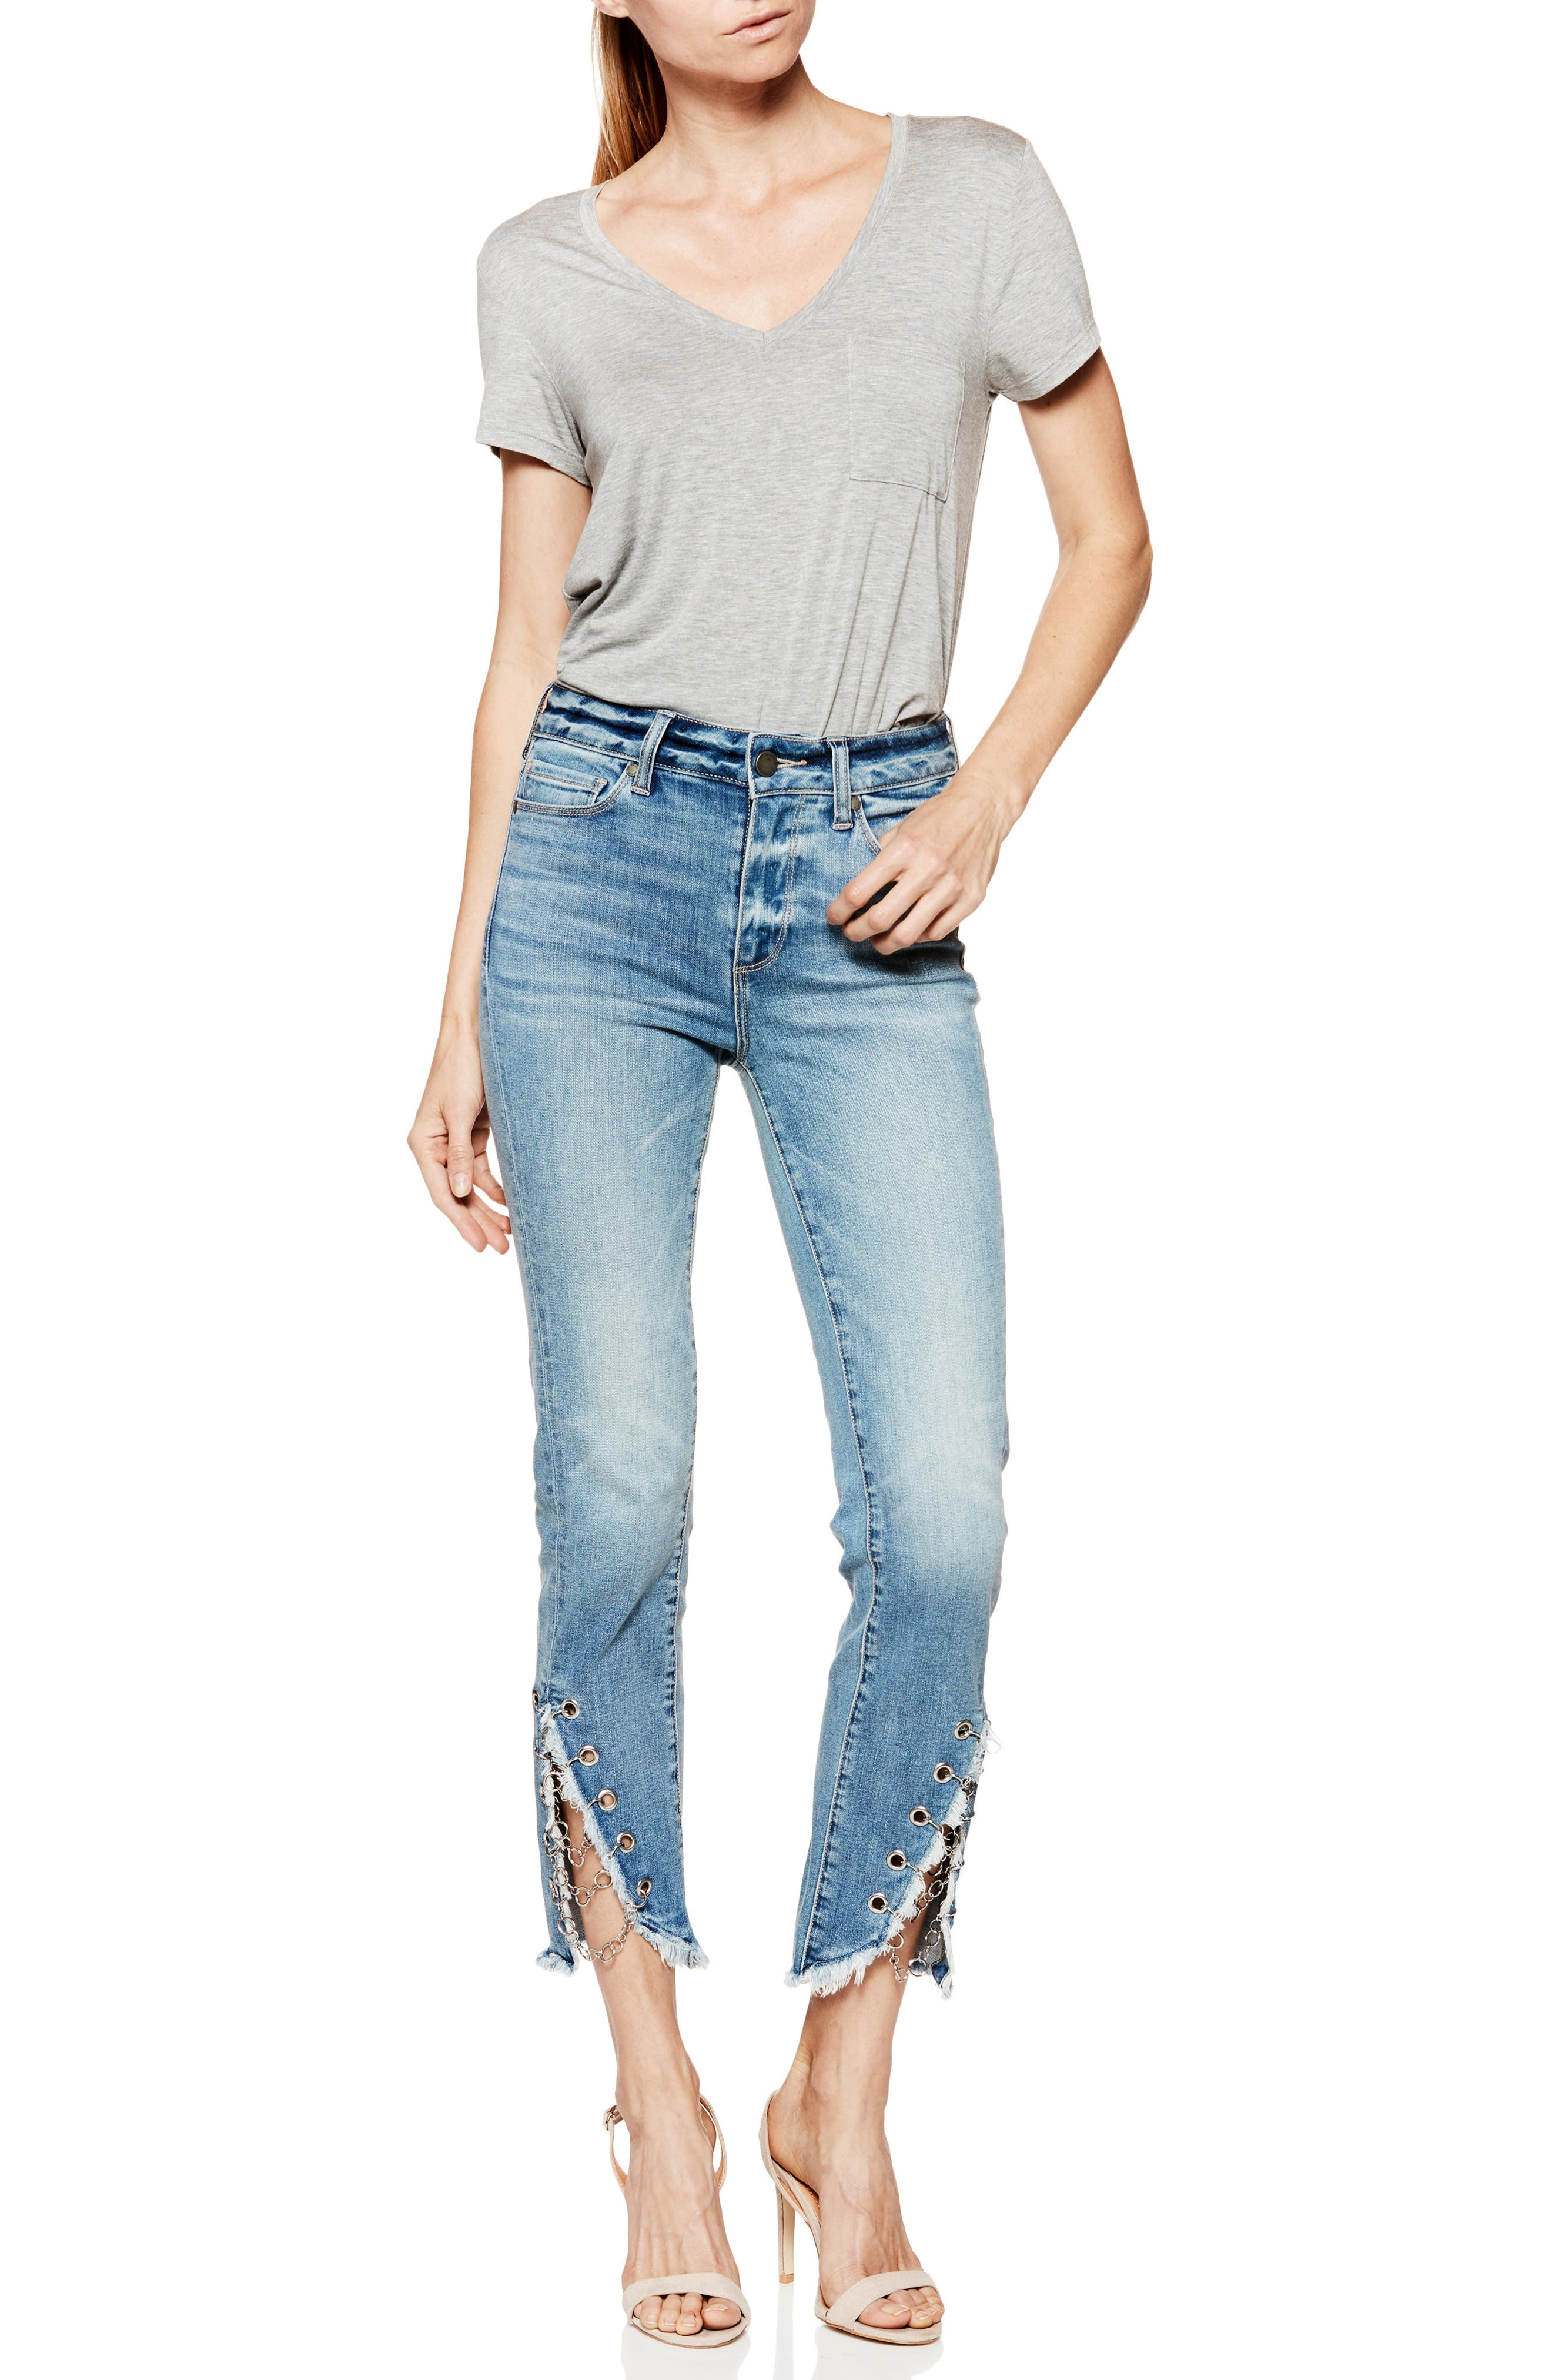 Hoxton High Waist Ankle Straight Leg Jeans,                             Alternate thumbnail 6, color,                             400